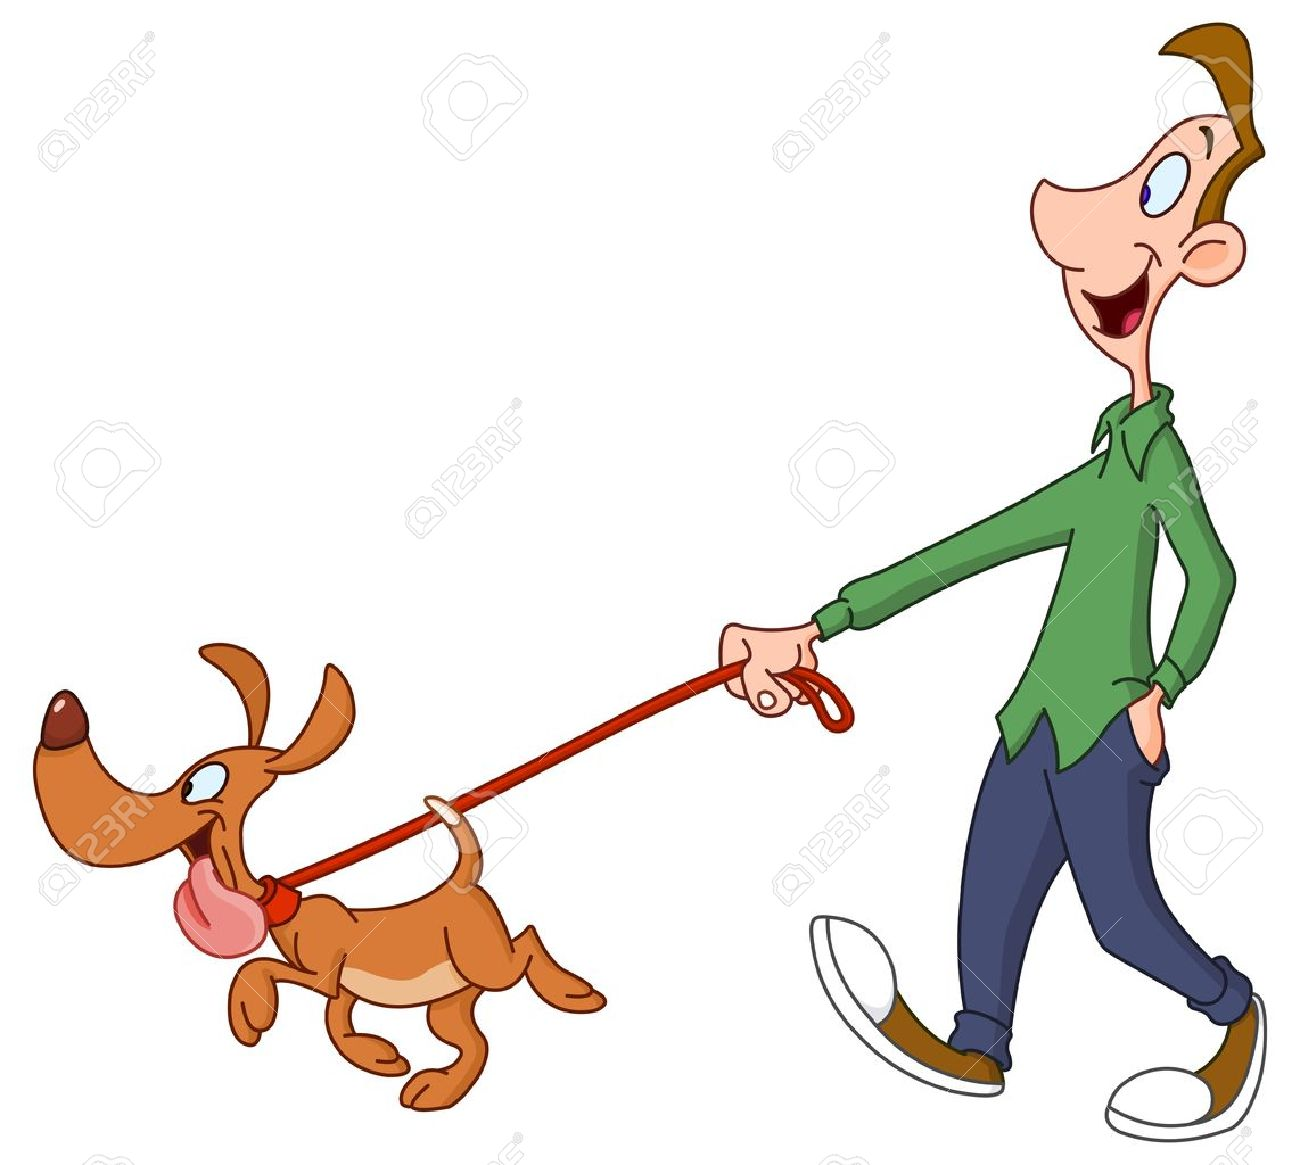 A dog sitting at man feet clipart image freeuse download Dog Walking Clipart | Free download best Dog Walking Clipart on ... image freeuse download